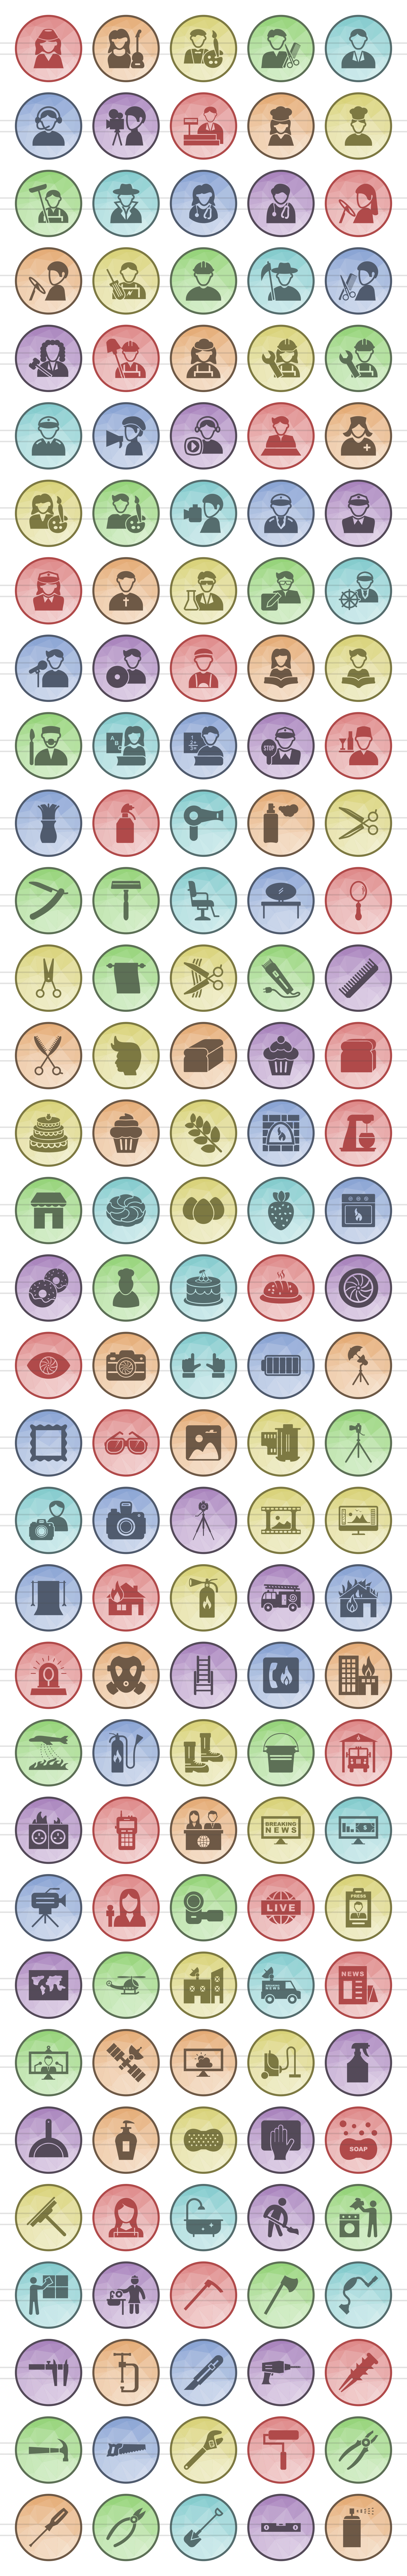 166 Professionals & their tools Filled Low Poly Icons example image 2